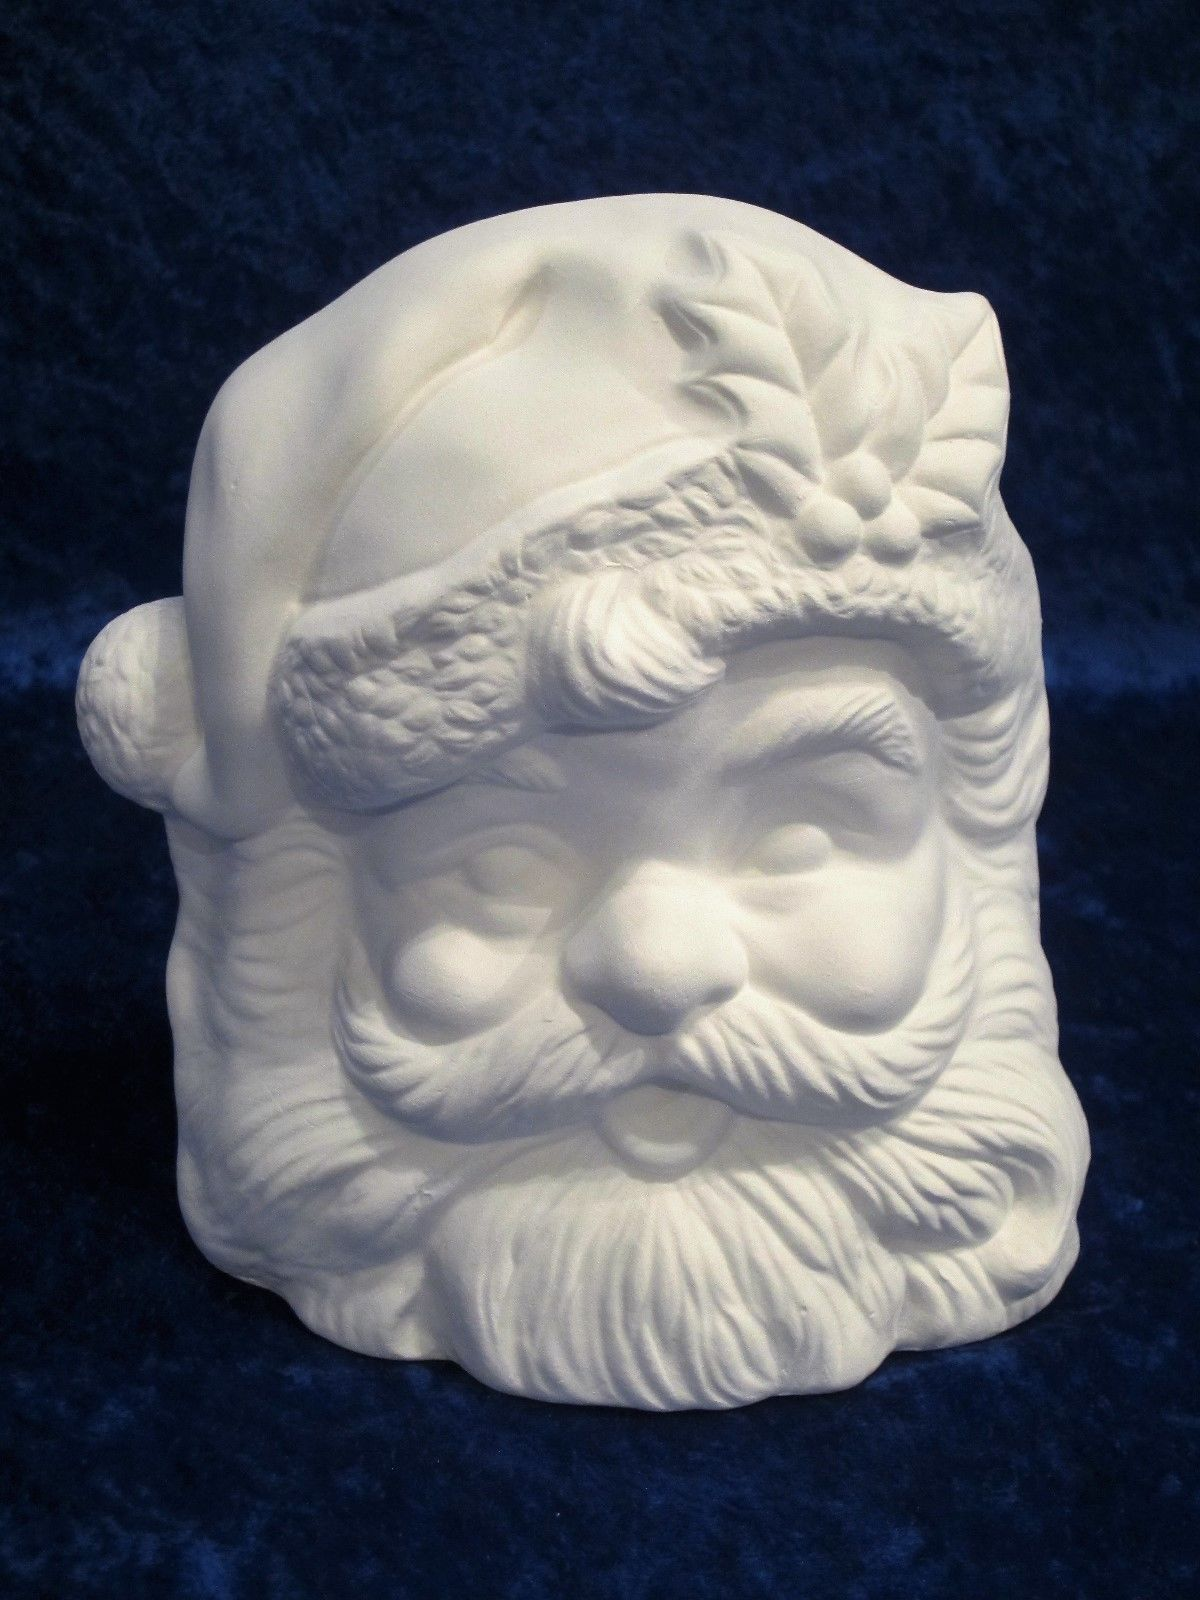 Mrs Santa Claus Knitting Ready to Paint Unpainted Ceramic Bisque